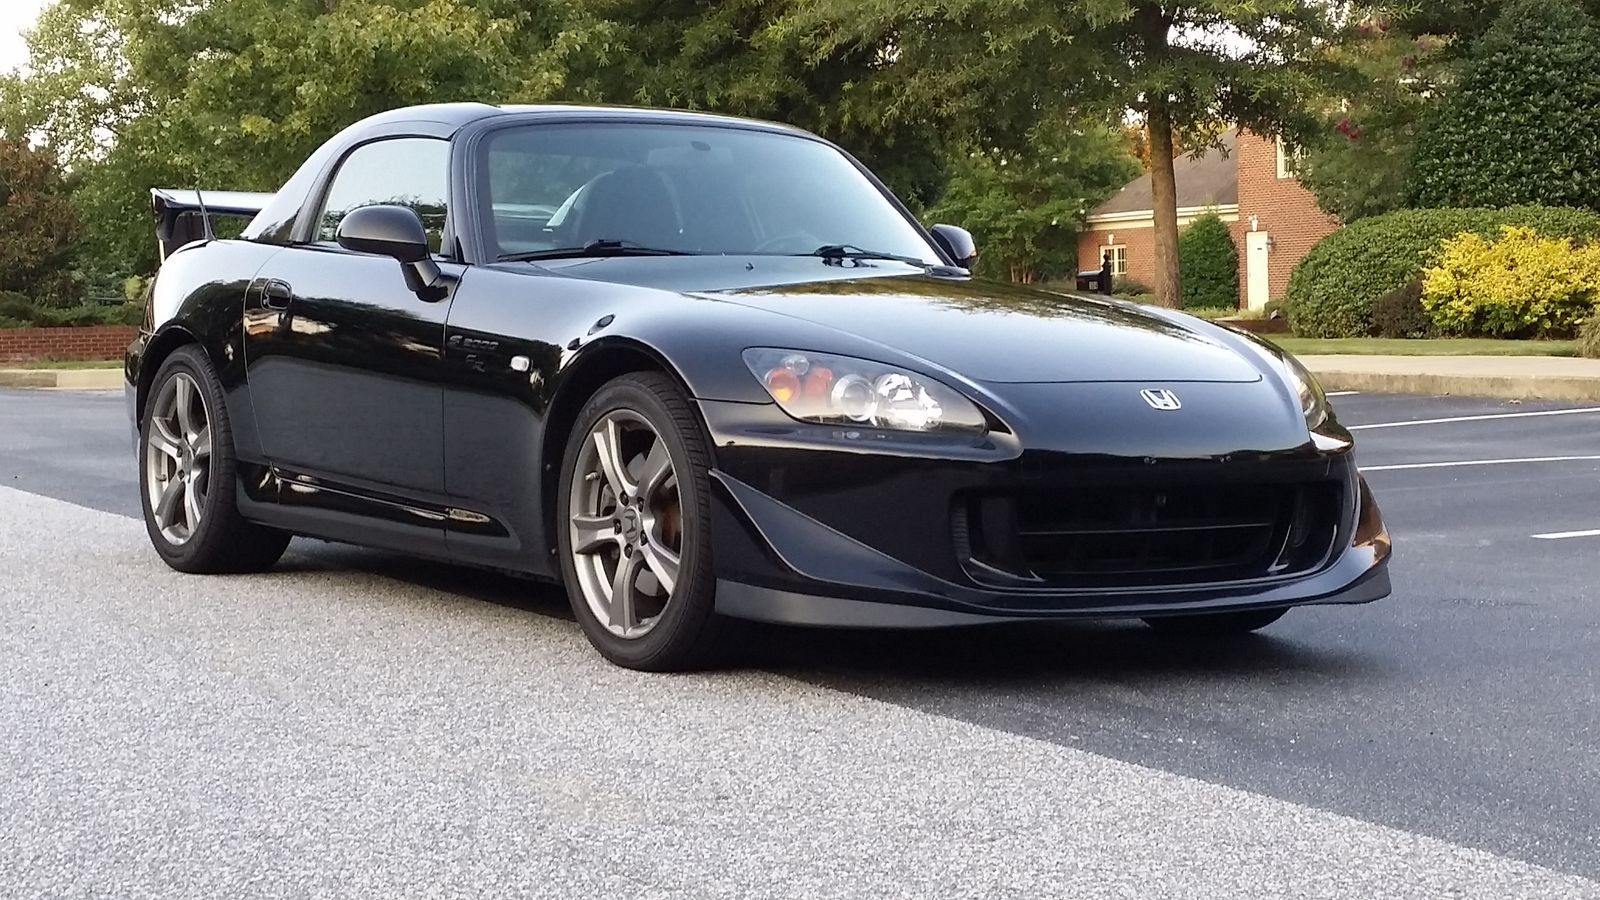 Black honda s2000 cr